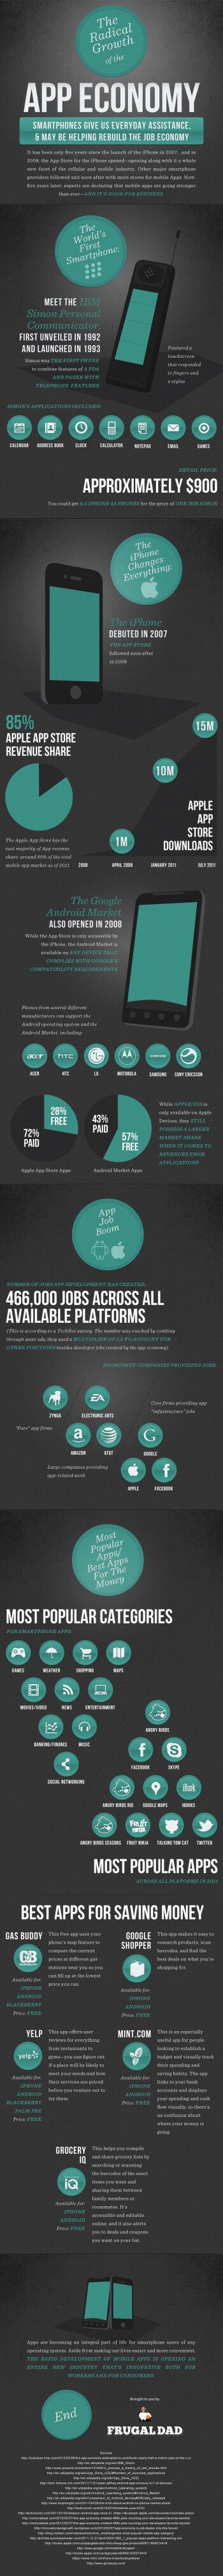 "Check out this ""App Economy"" infographic"